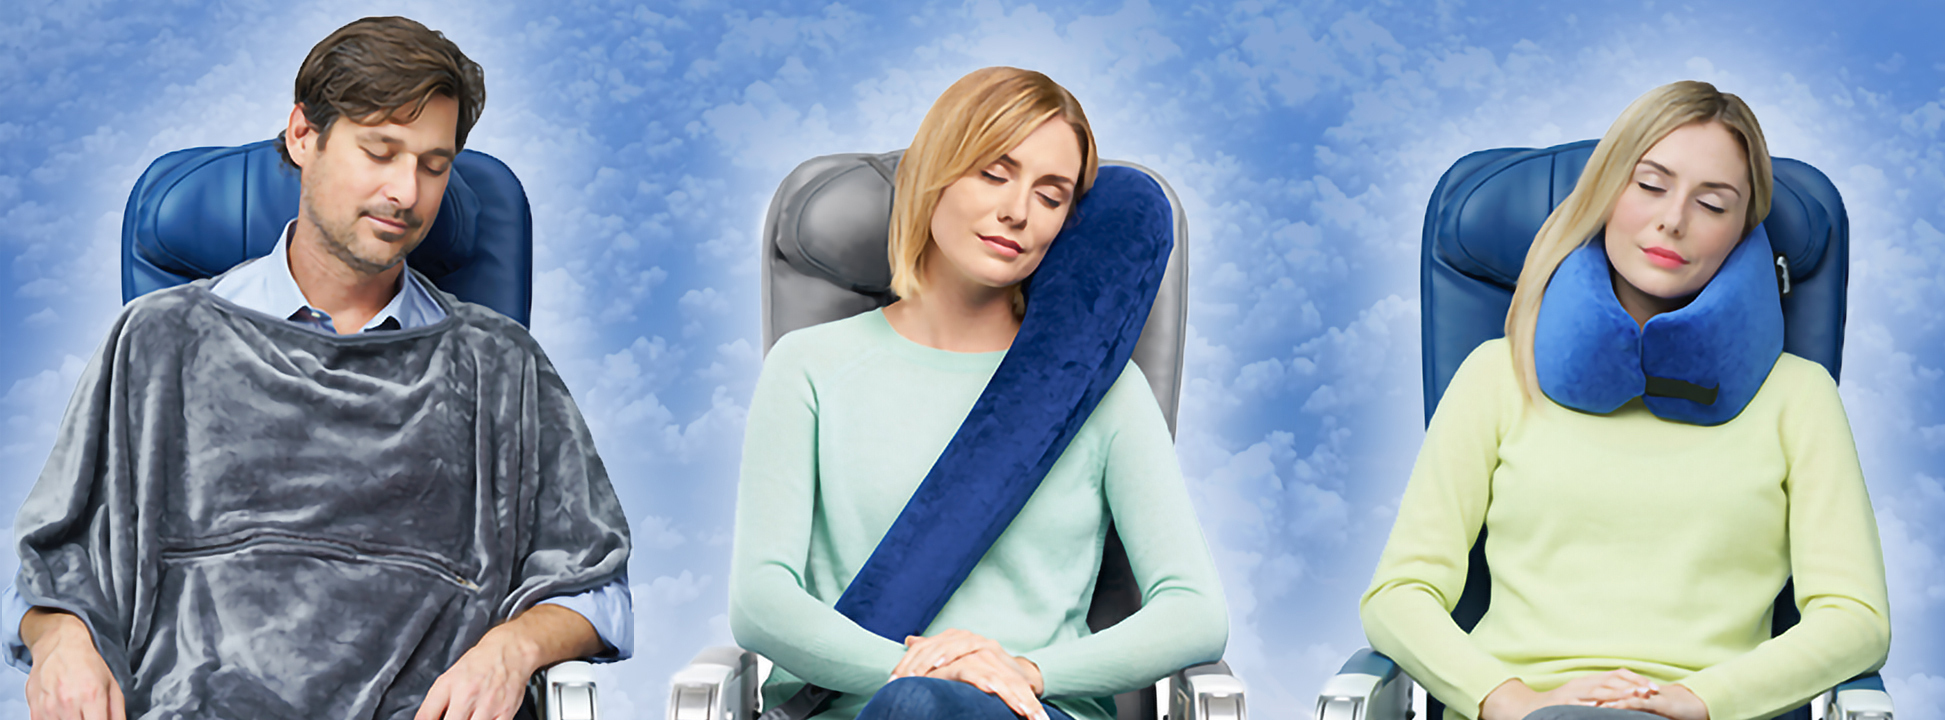 Cheap Travel Pillows In Bulk Tourism Company And Tourism